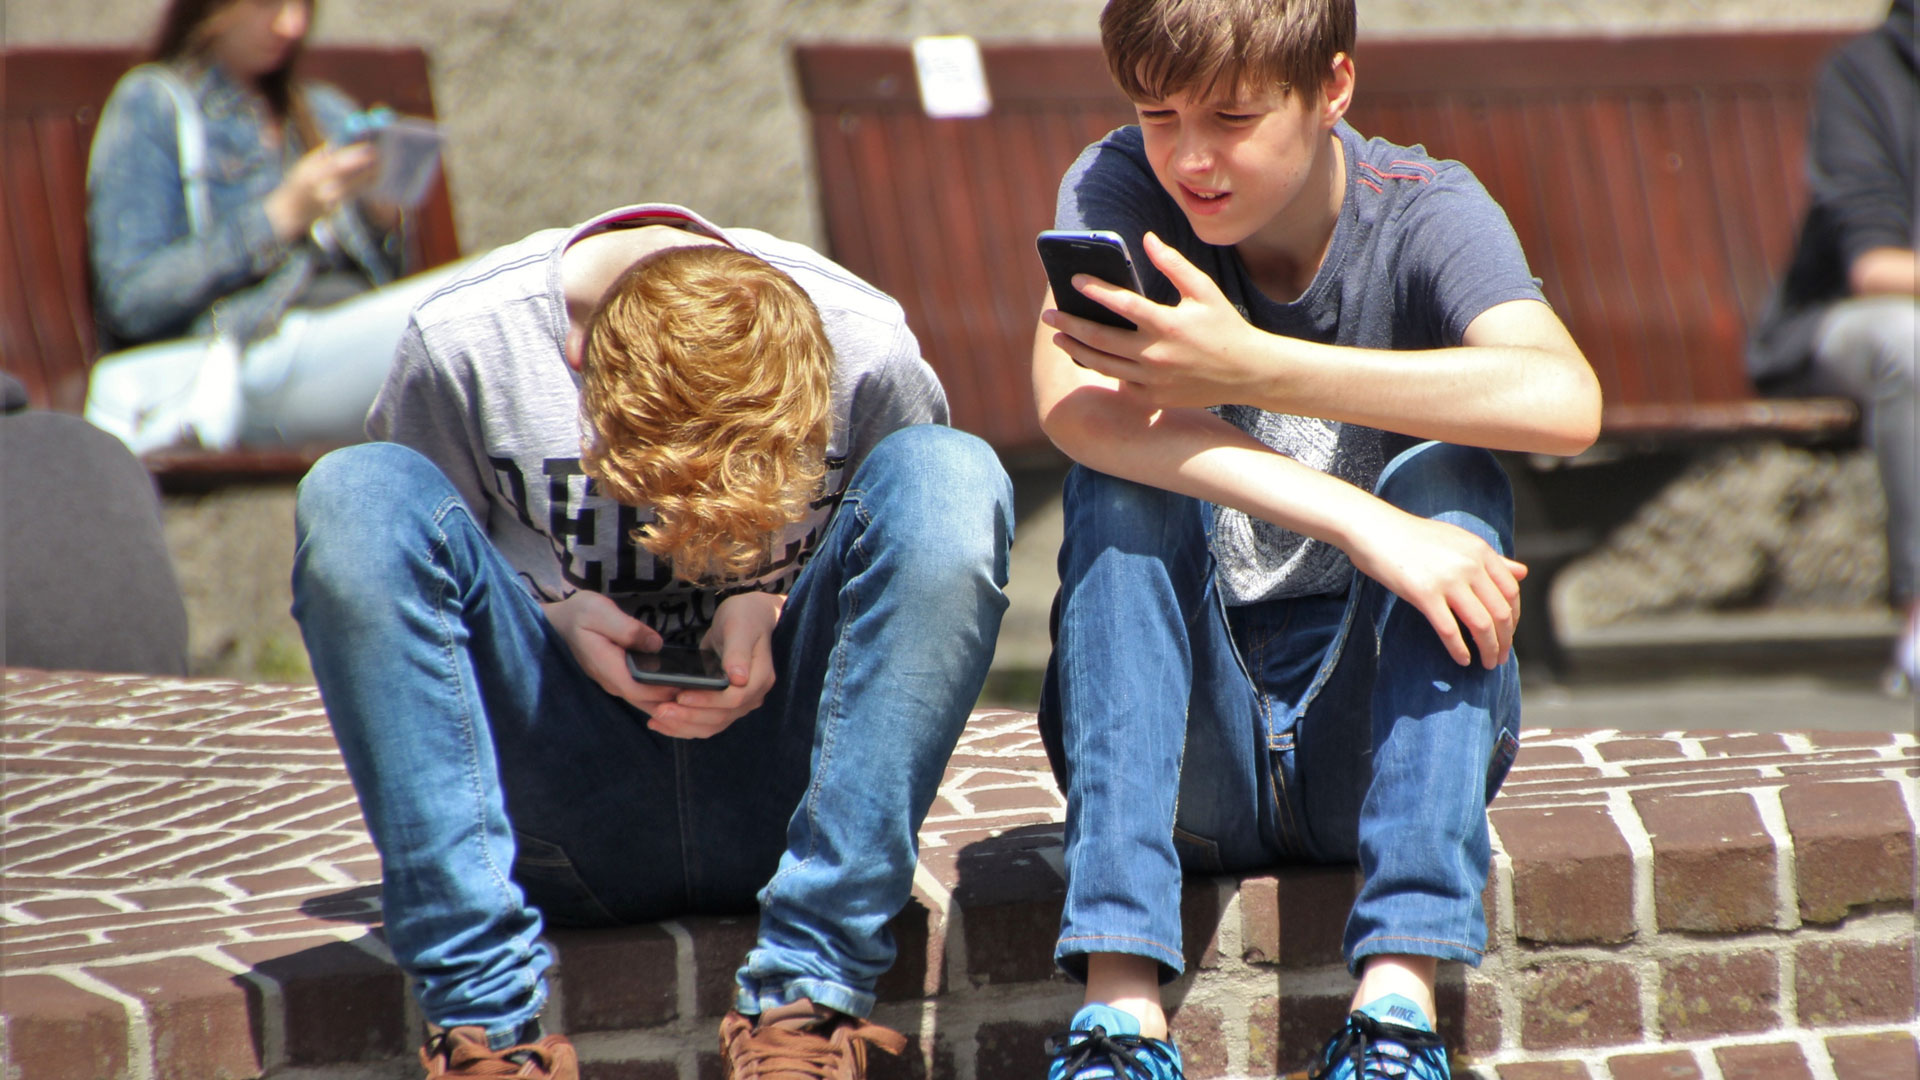 Two teenage boys look at their mobile phones